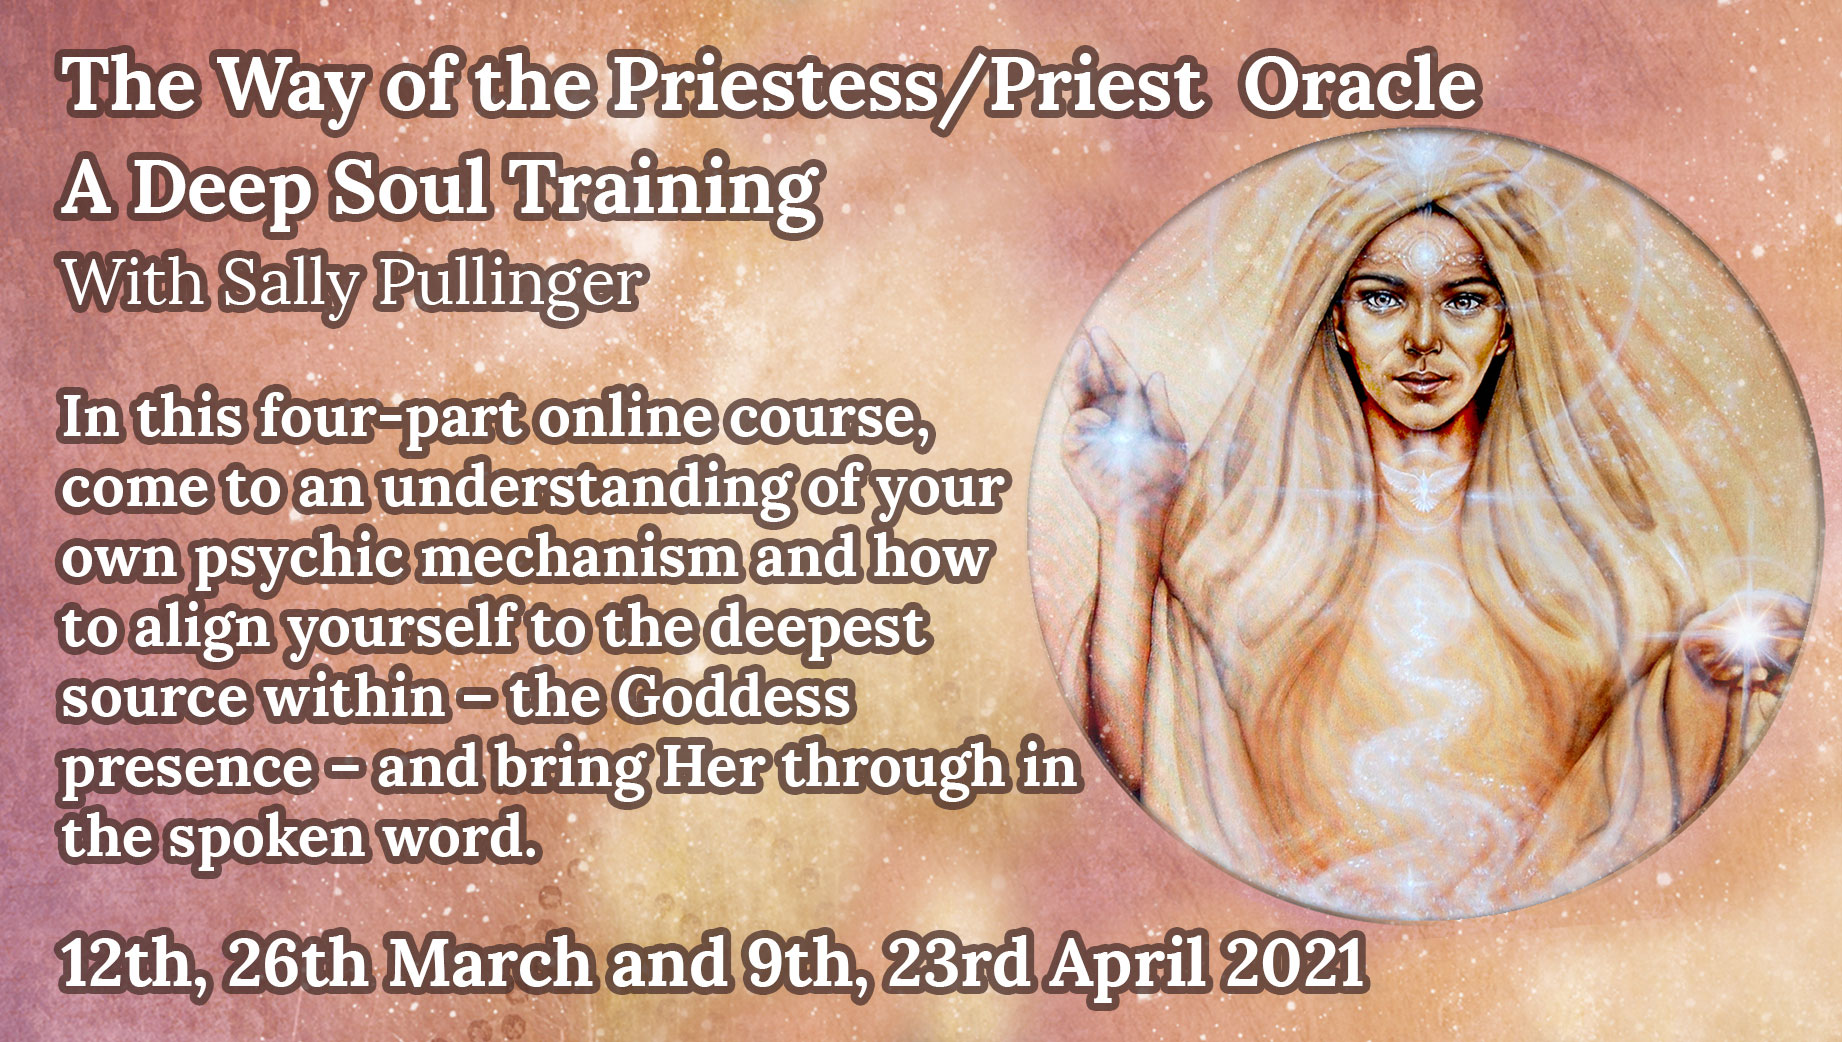 The way of the priest/ess oracle